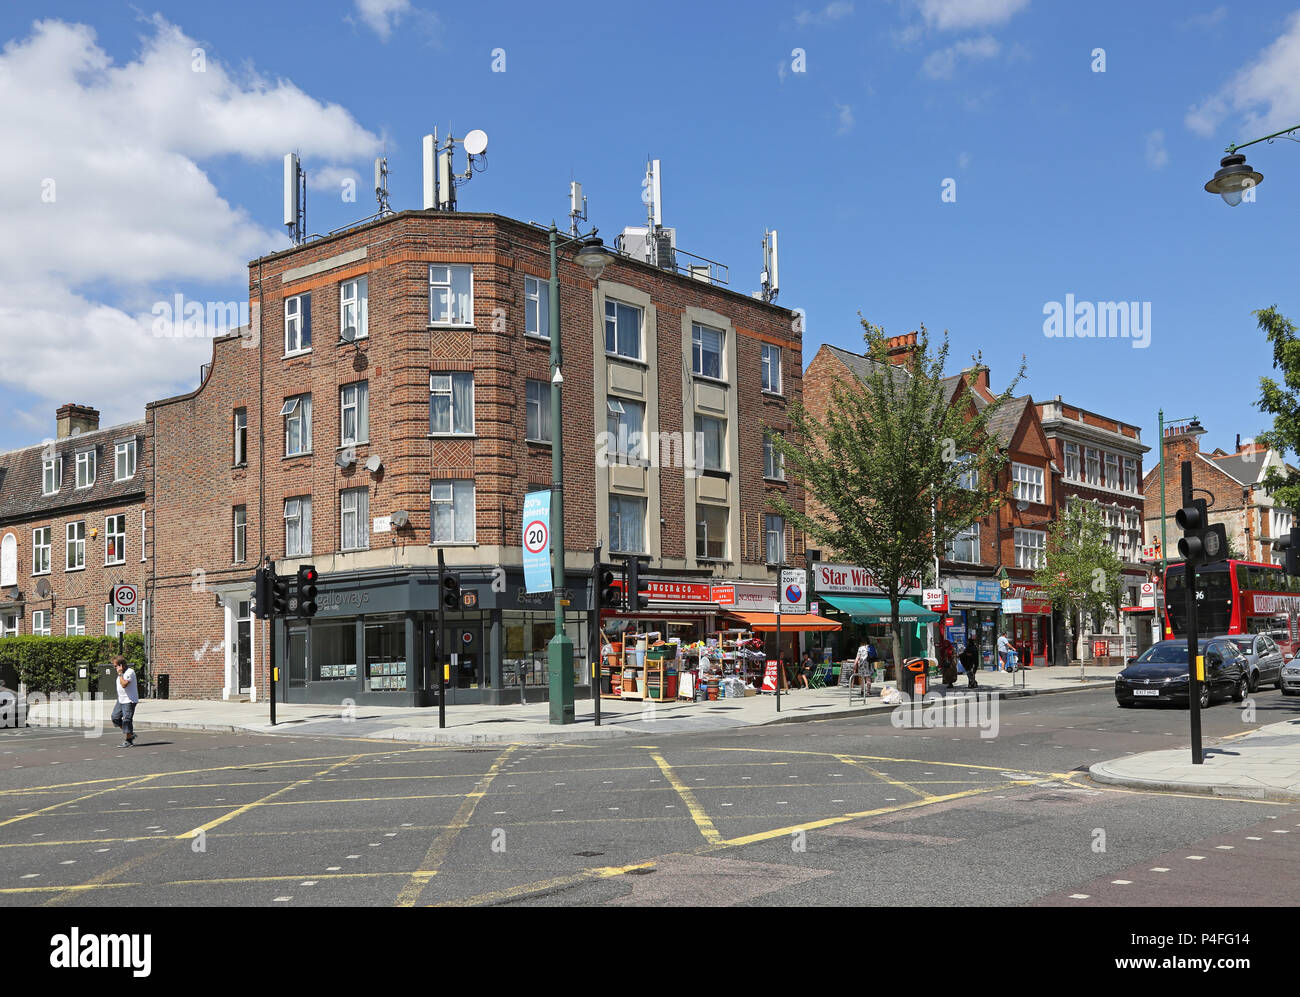 Norwood Road, South London, UK. A shopping street between Tulse Hill and West Norwood. Shows mobile phone antennas on a residential building. - Stock Image